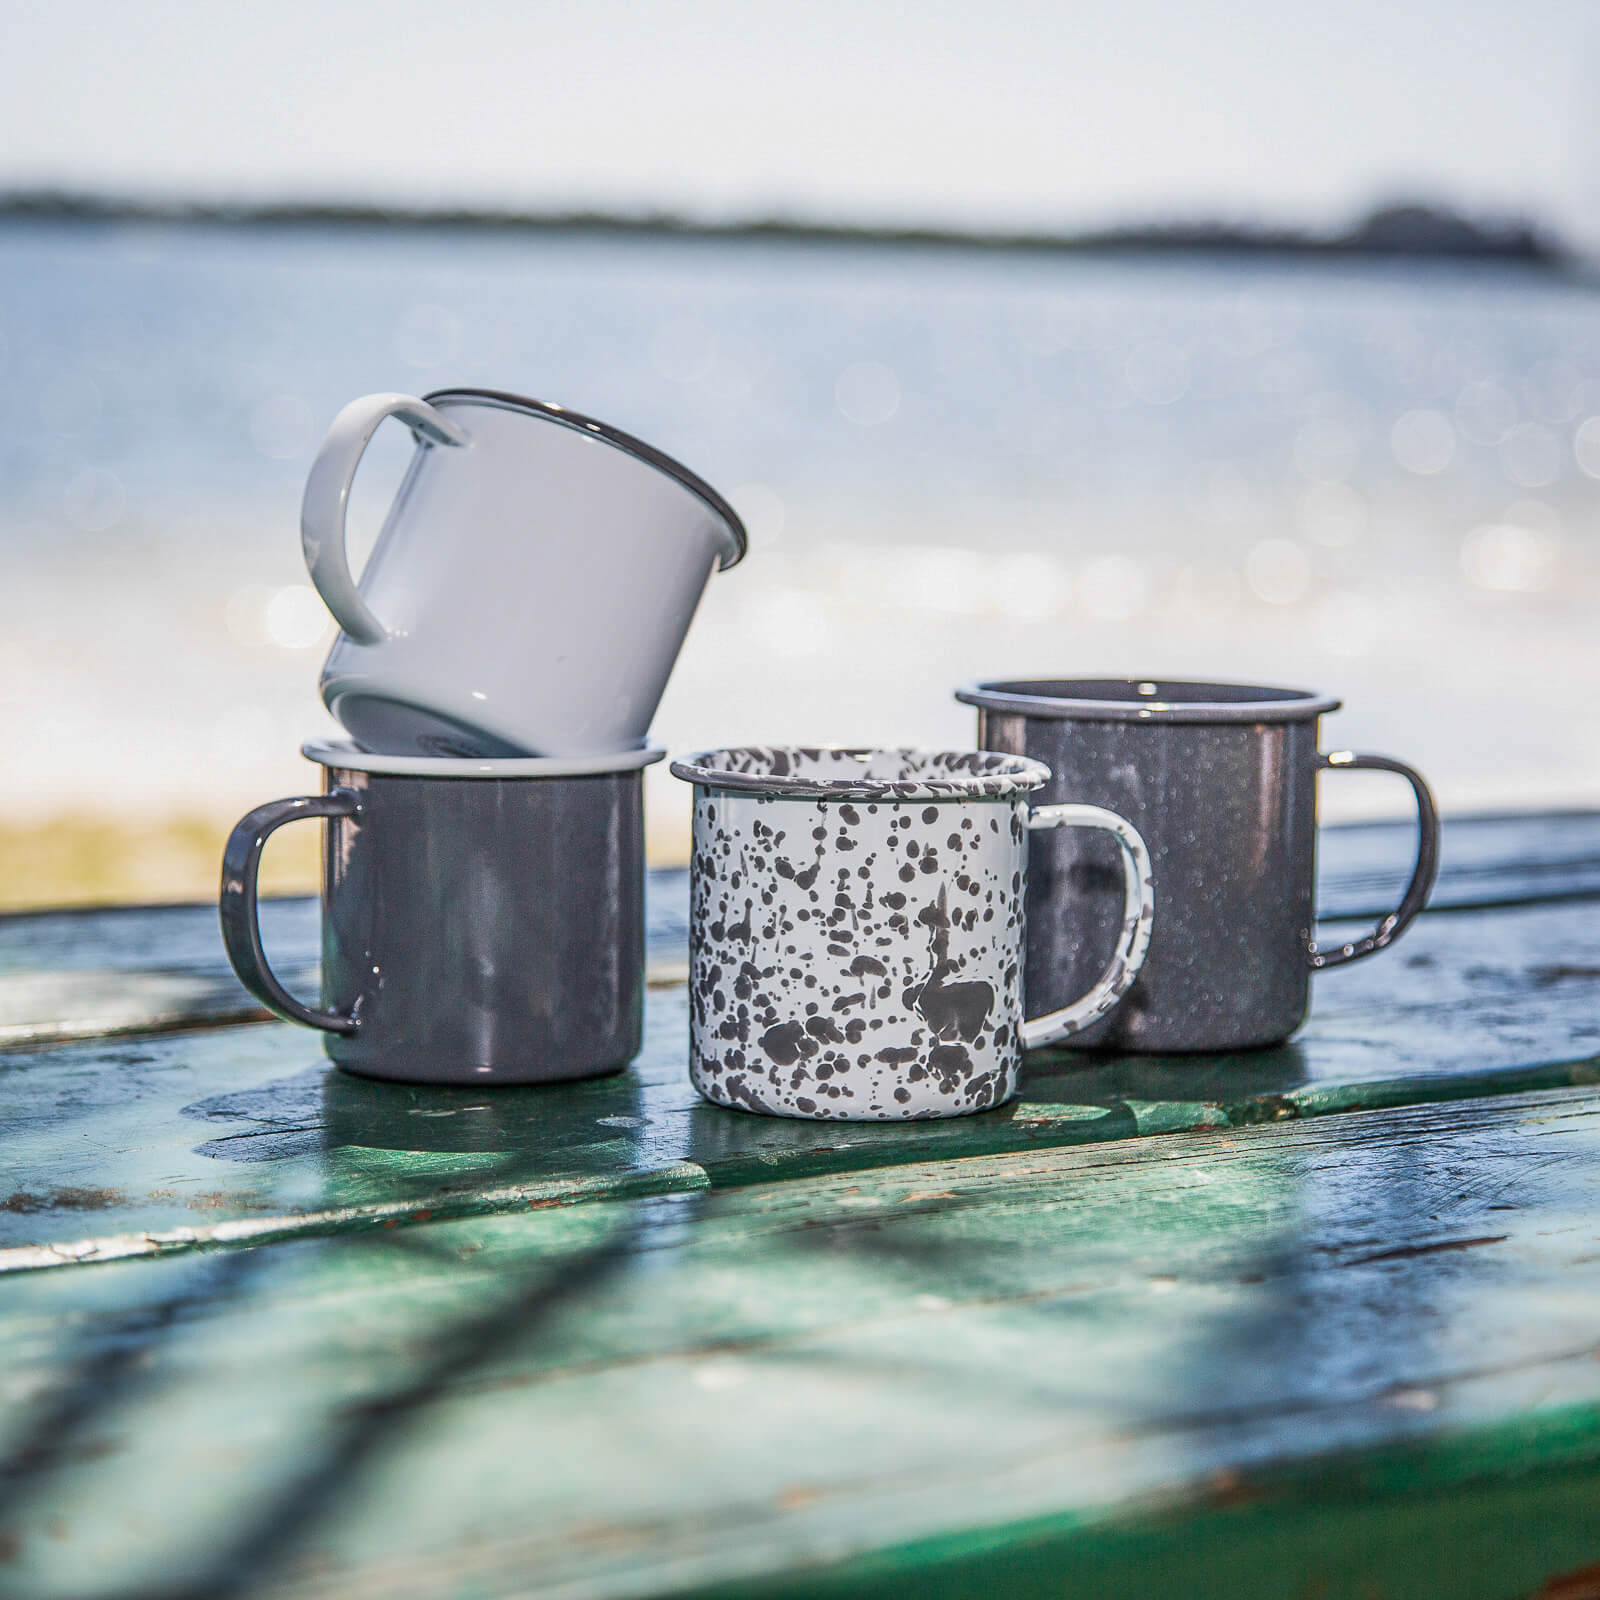 coffee mugs & enamelware camping mugs